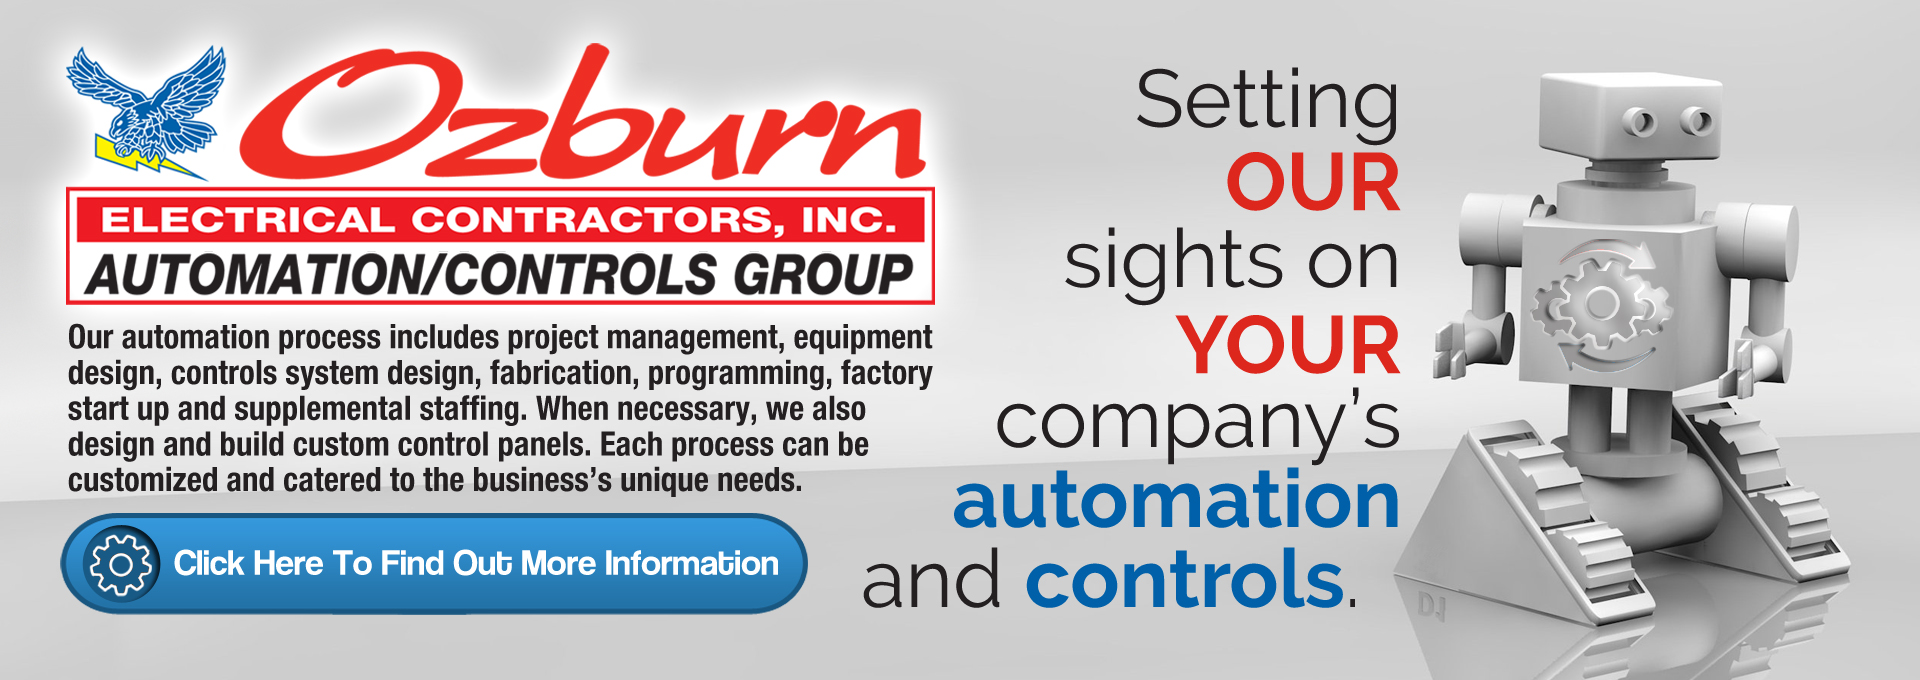 Industrial electrical automation and controls